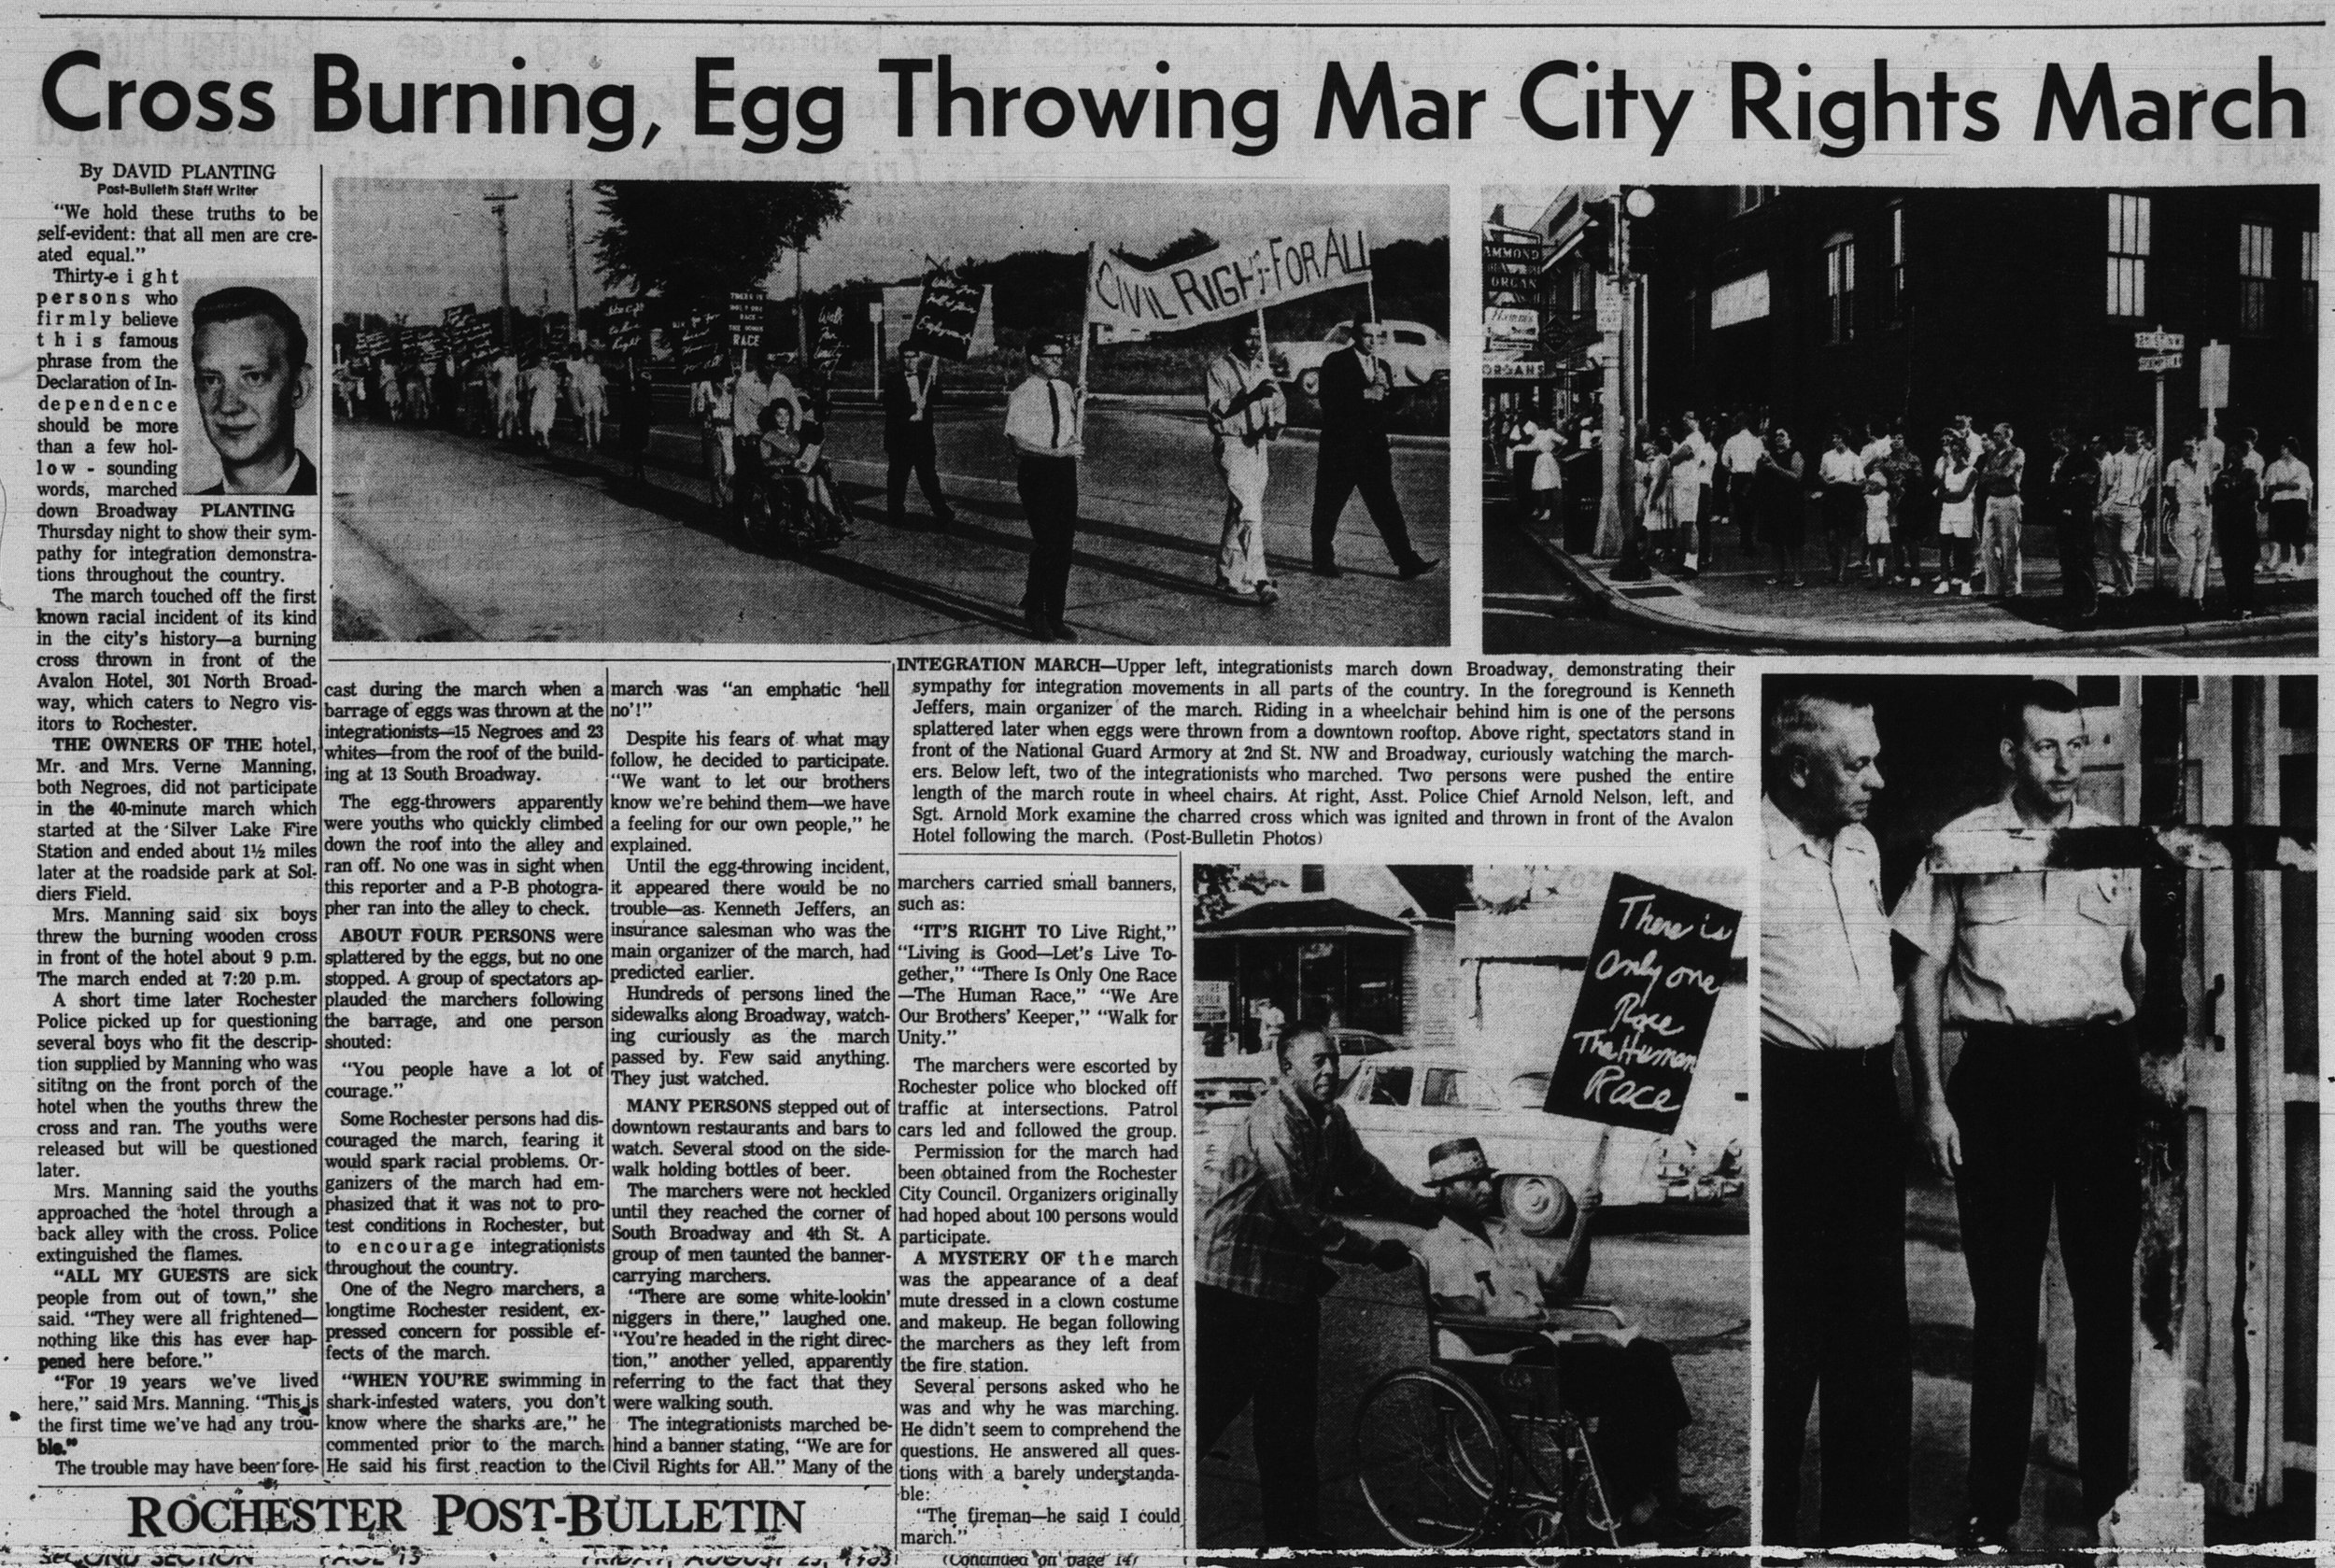 Clipping from the Post-Bulletin newspaper dated August 23, 1963